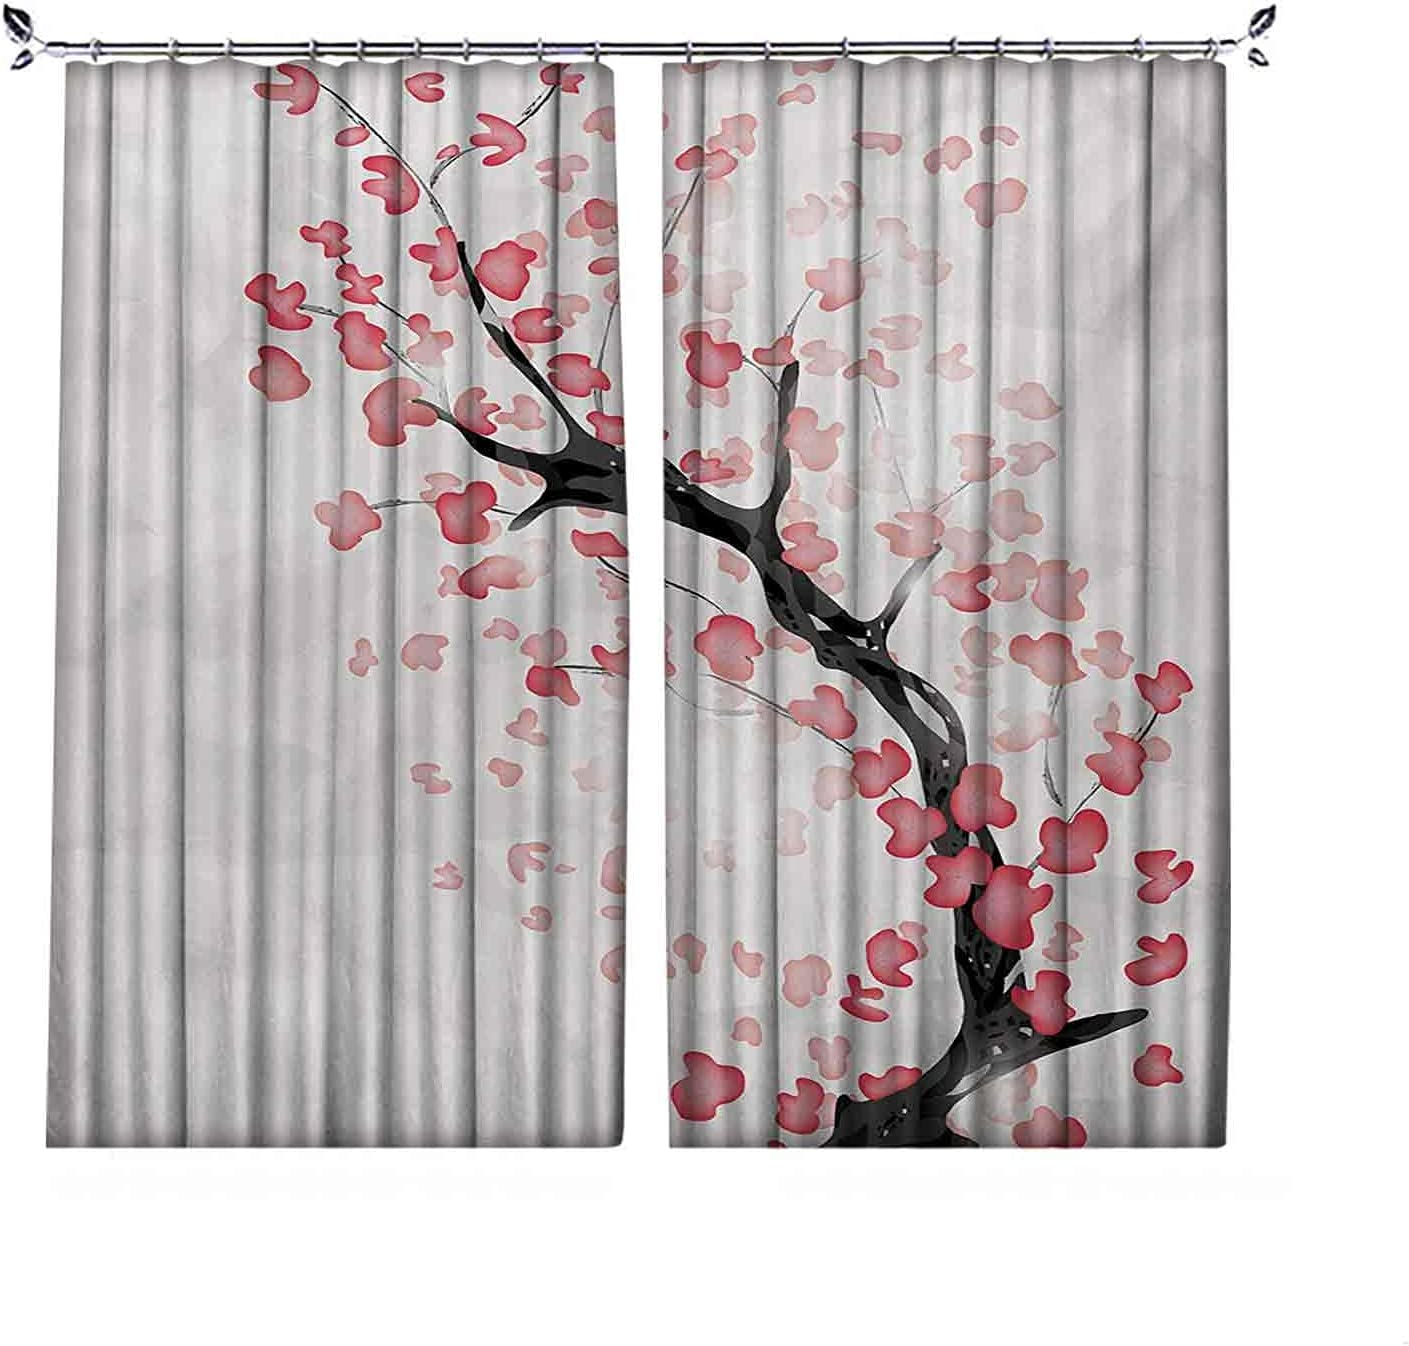 Room online shopping Darkening Cherry Blossom Curtain Dreamy Nature Japanese Latest item in